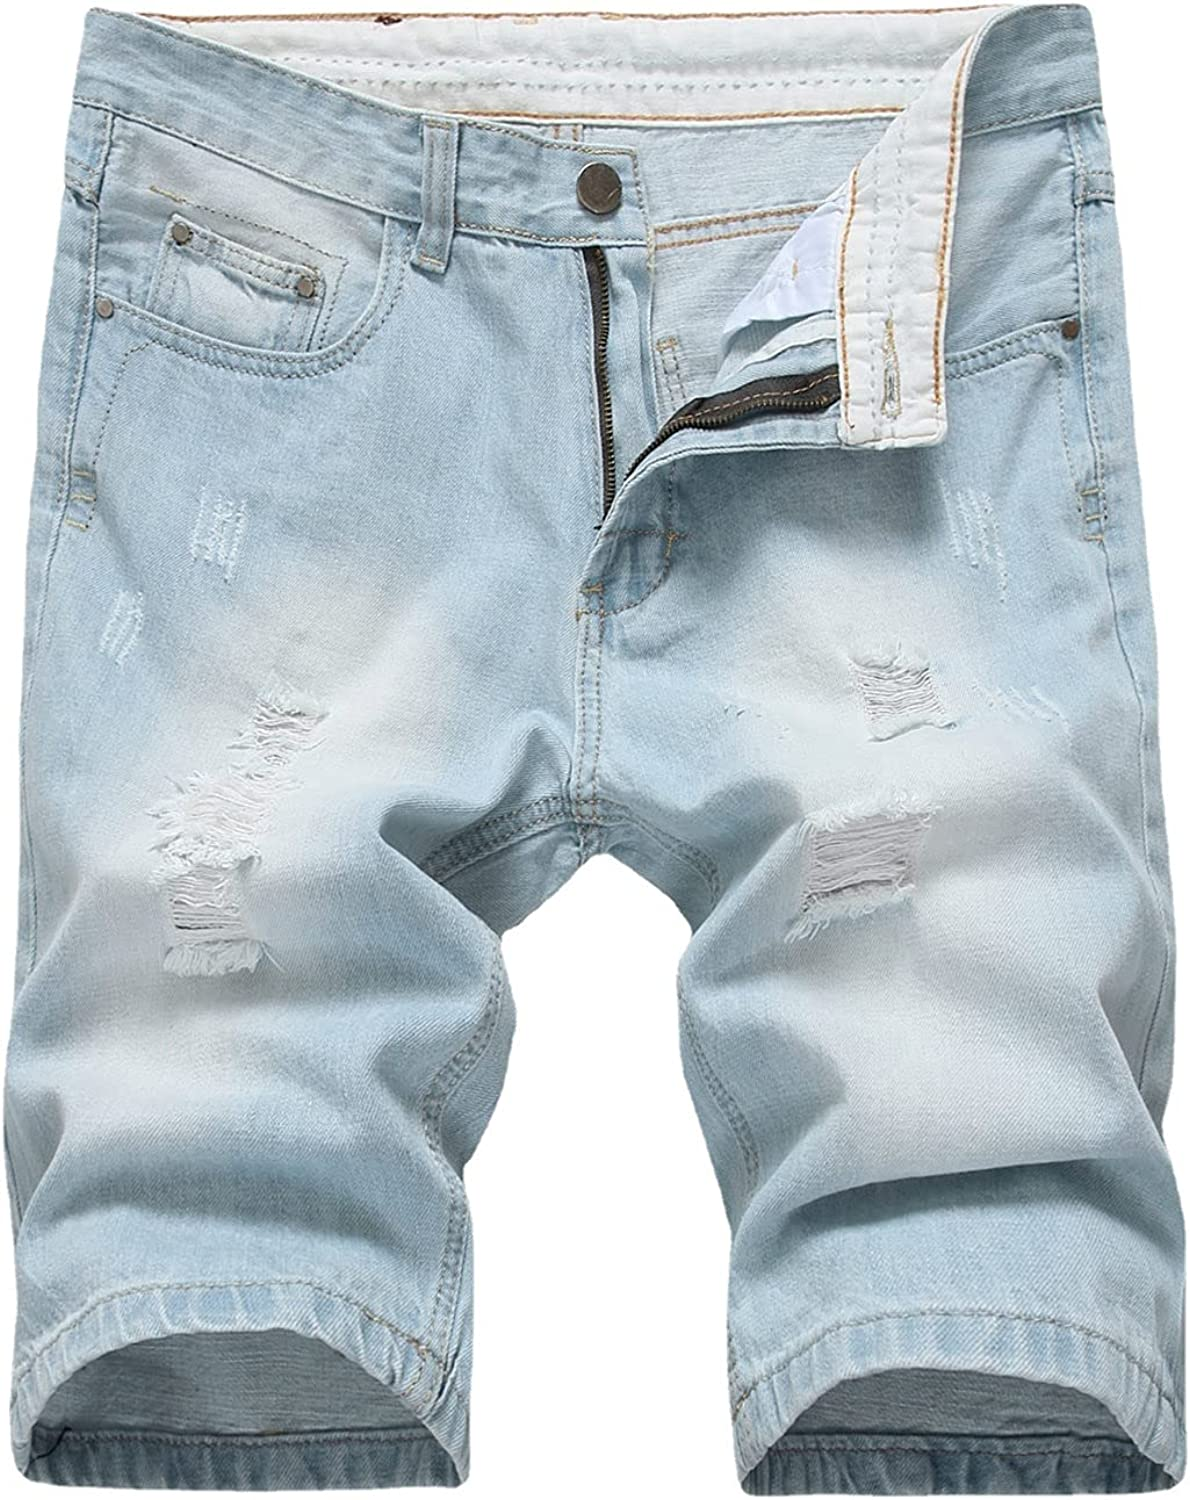 Men's Classic Fit Ripped Hole Denim Short Retro Washed Distressed Jeans Shorts Stretch Straight Casual Jean Shorts